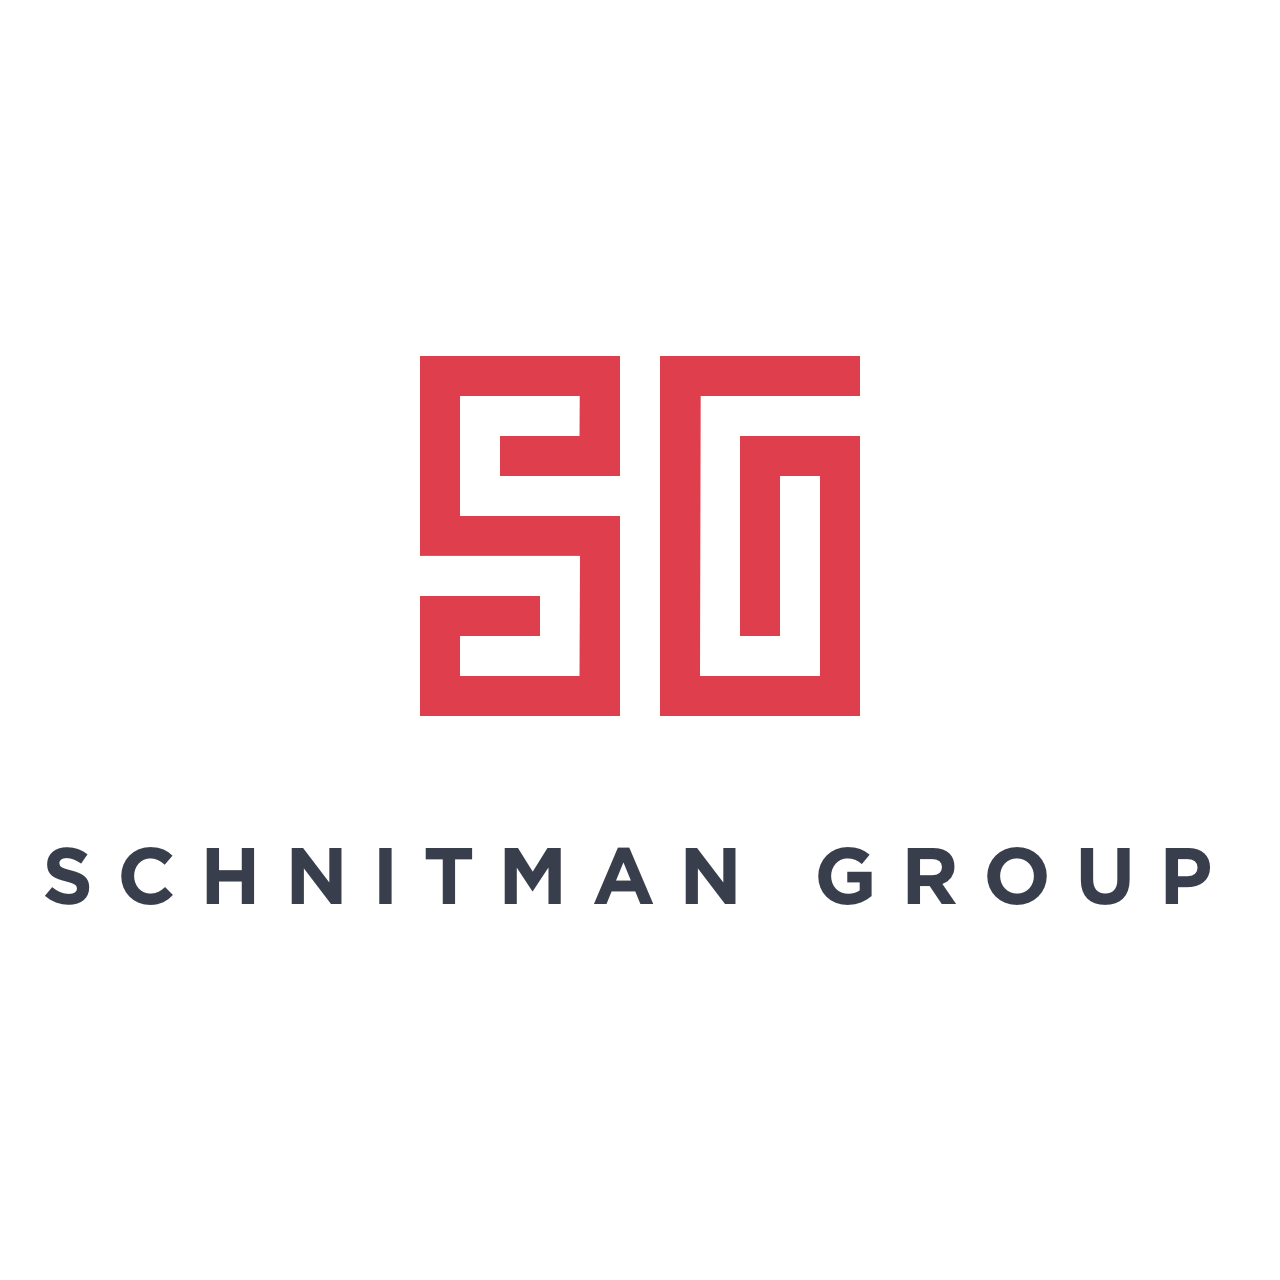 Schnitman Group